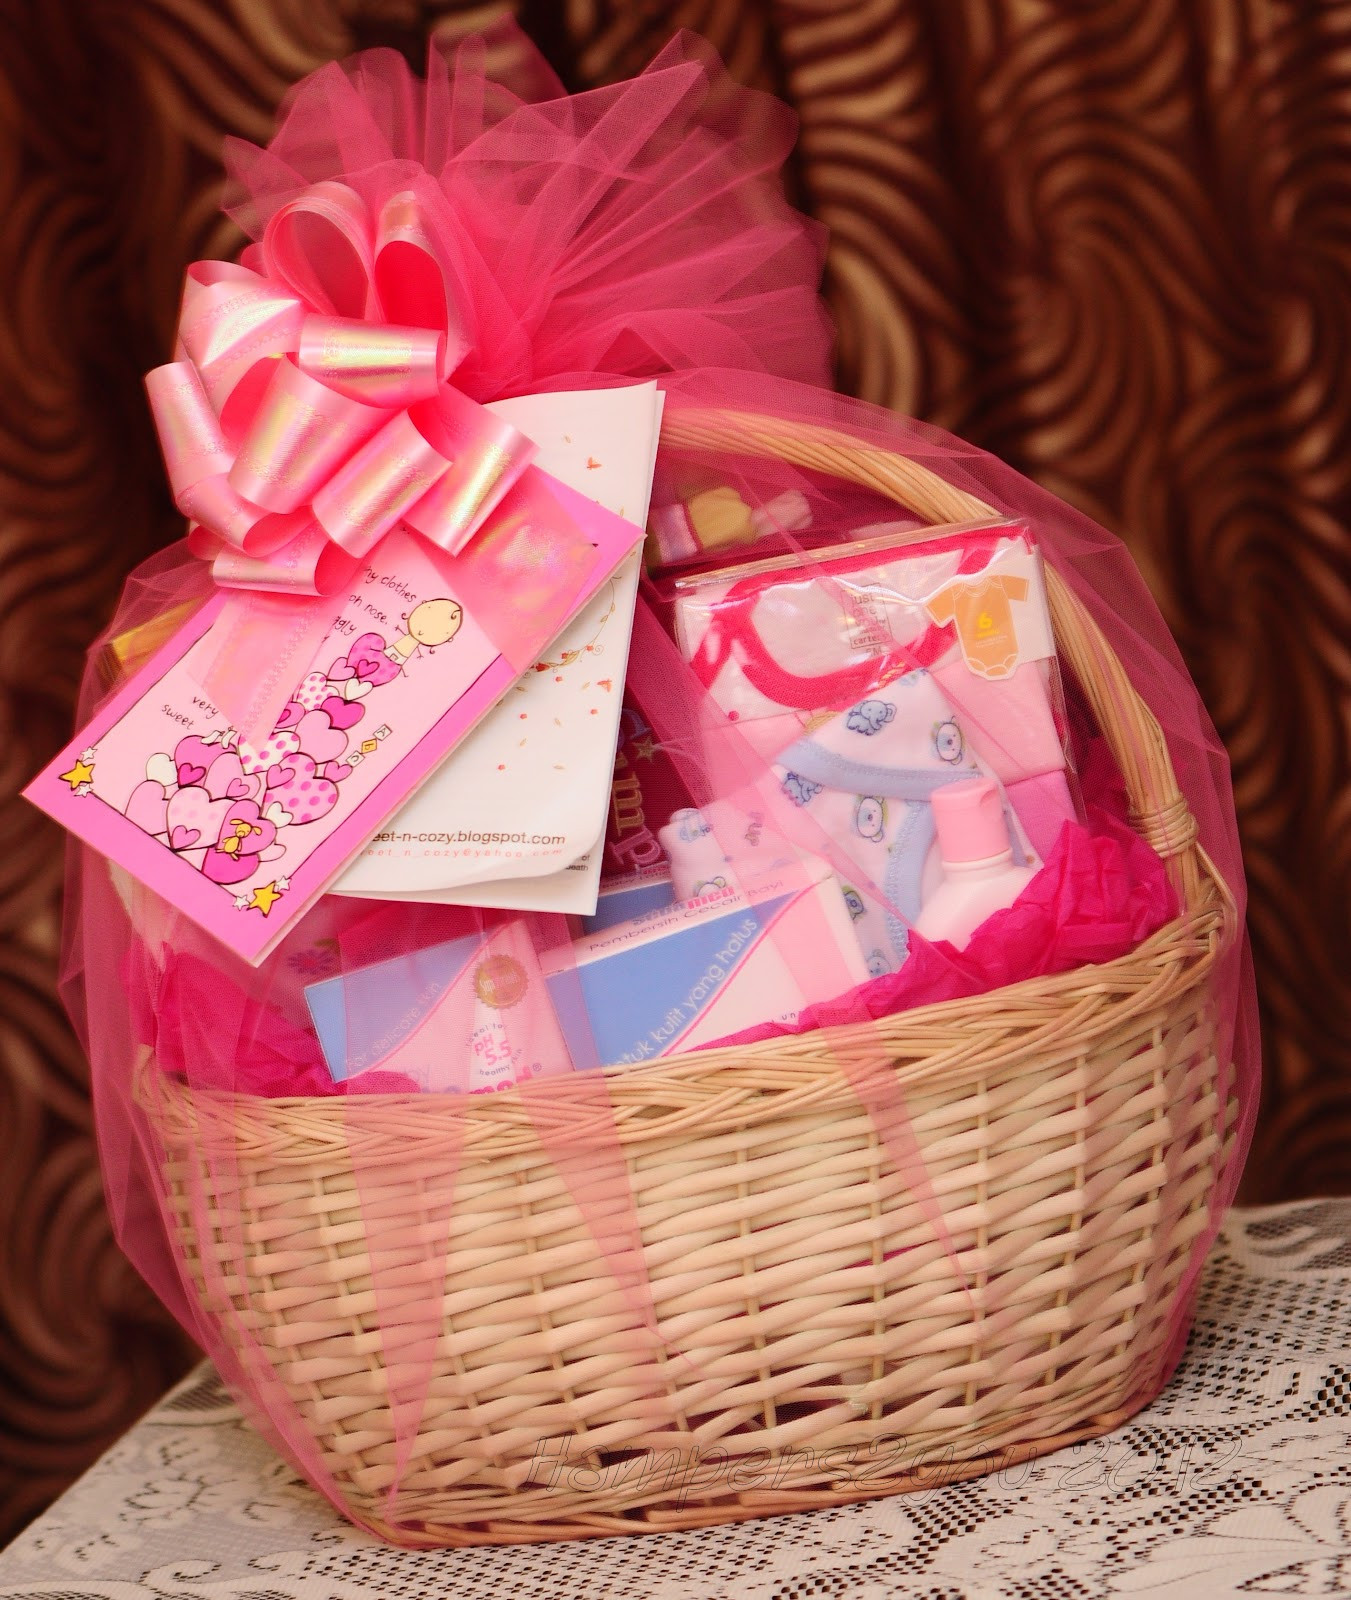 Gift Basket Ideas For Girls  Hampers2you Baby Gift Baskets for Newborn Girl